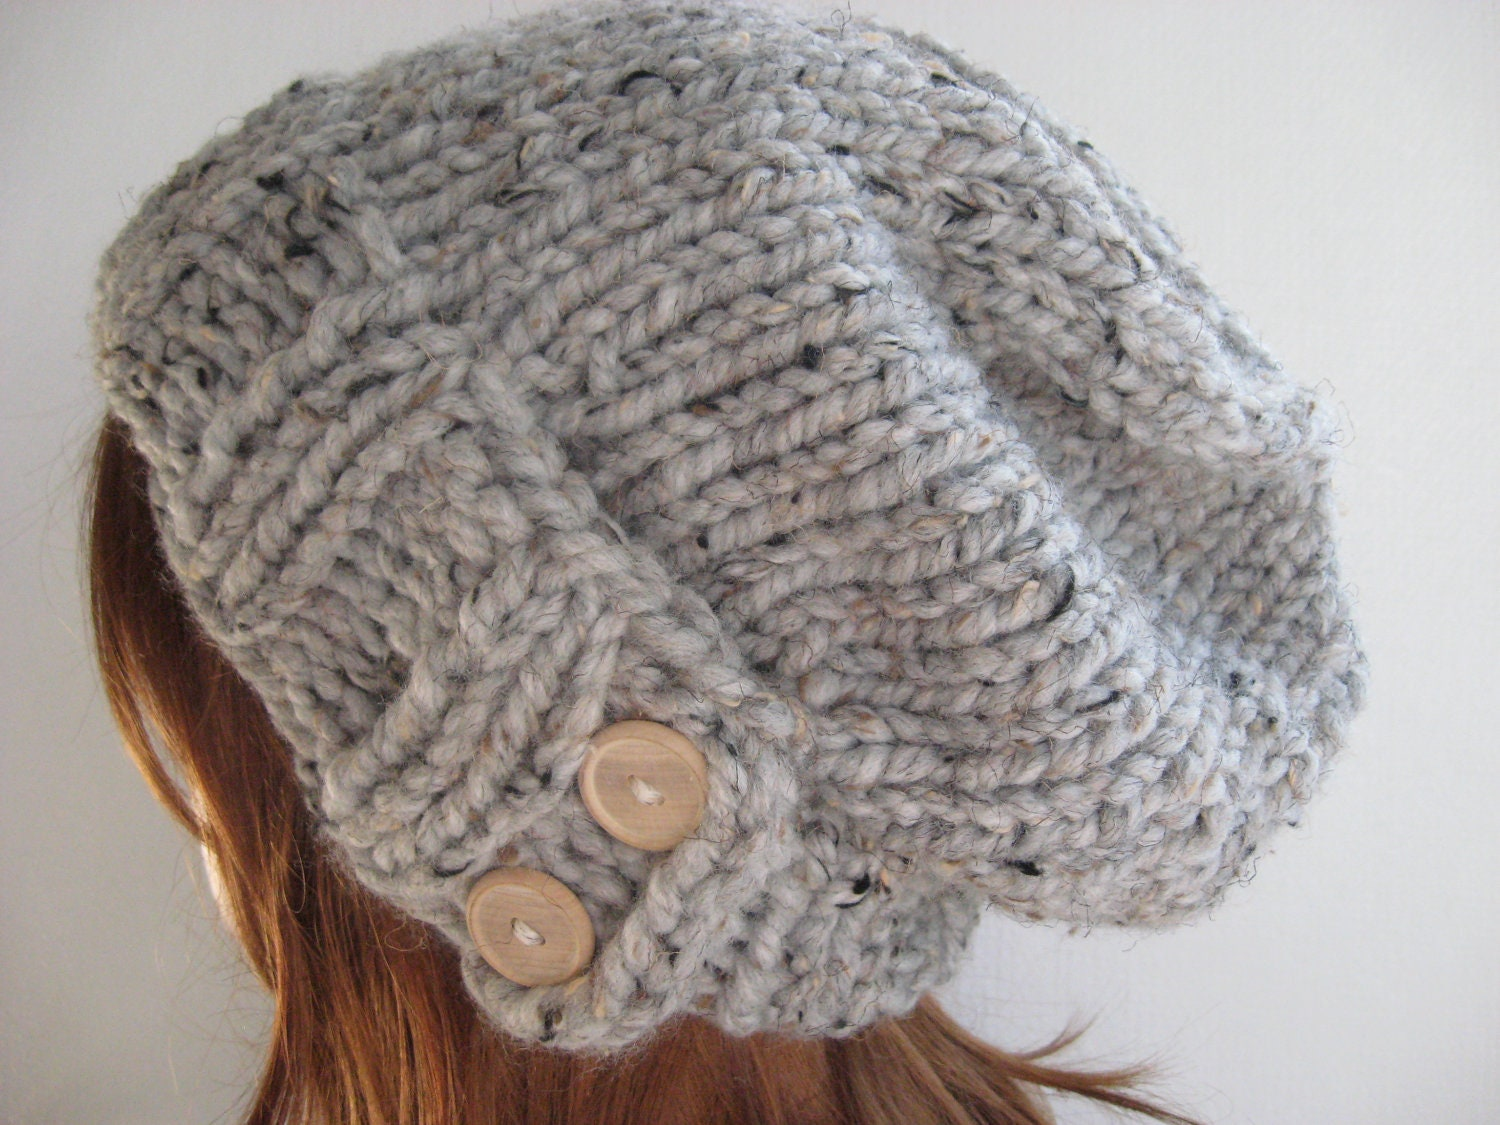 You can knit this hat in three different stitches - garter stitch, moss (seed) stitch or twisted rib stitch. We will walk you through how to knit your hat in moss stitch, alternating knit and purl rows.